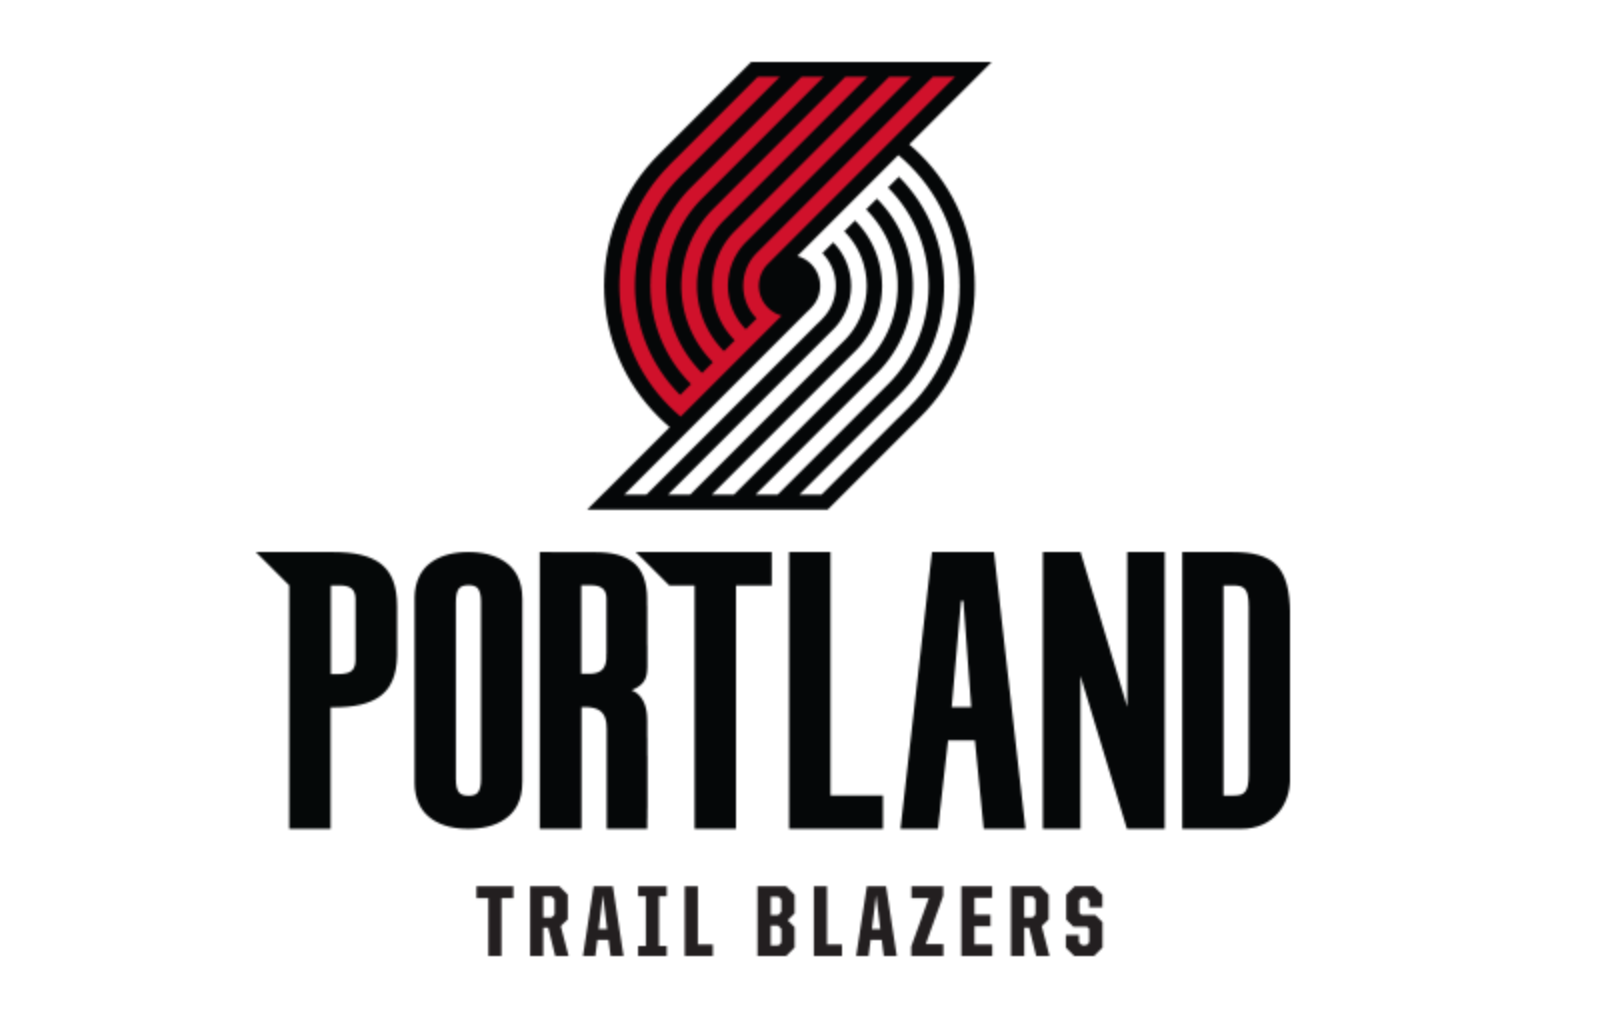 Here Is The New Portland Trail Blazers Logo Oregonlive Com